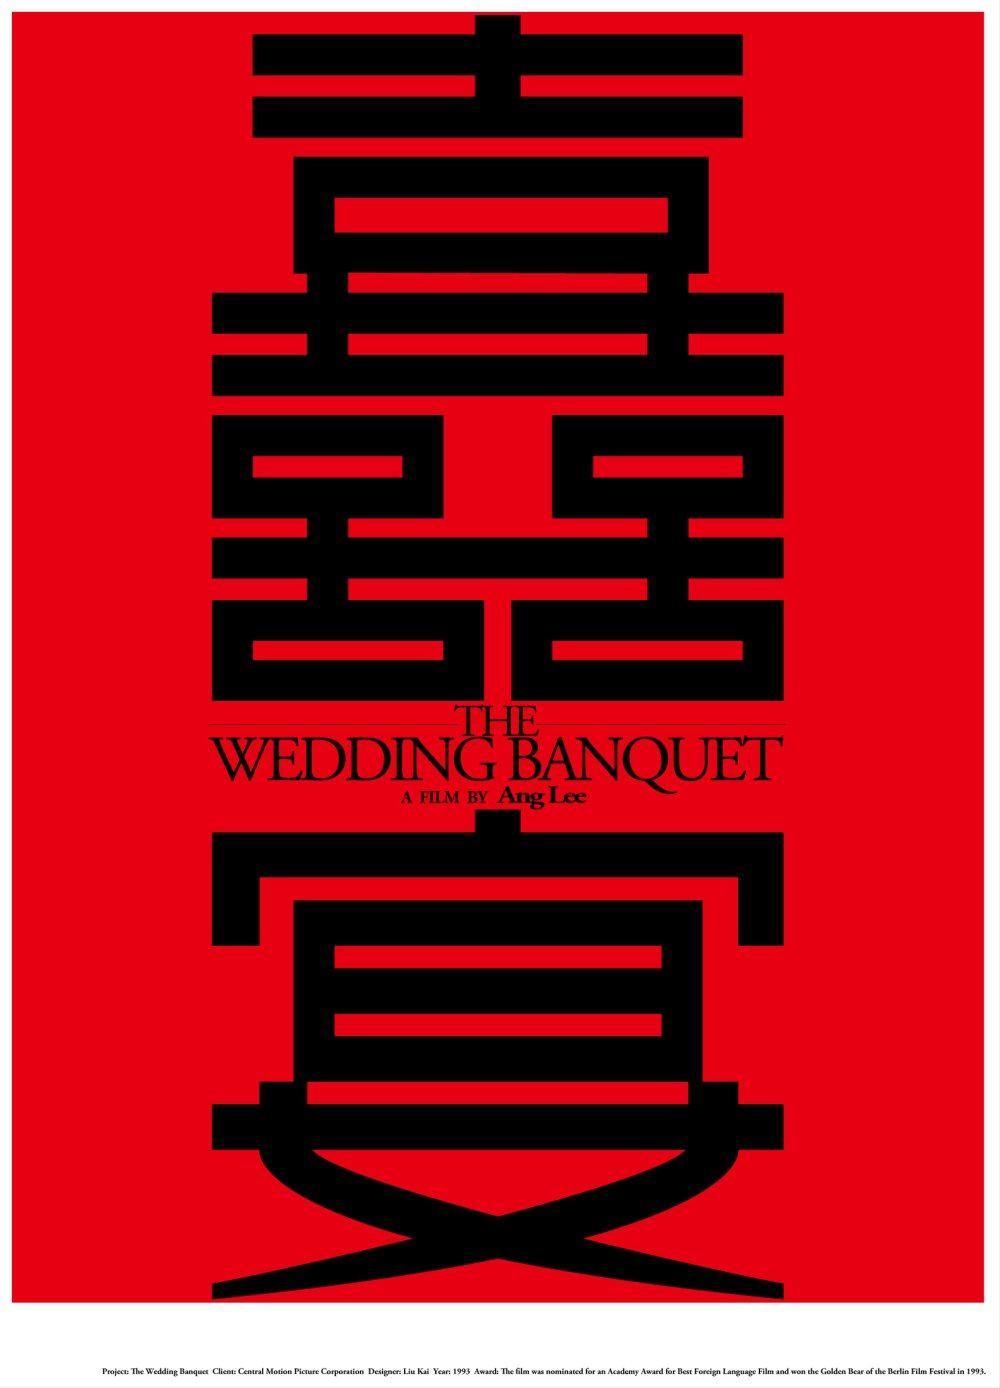 1993【喜宴】 The Wedding Banquet